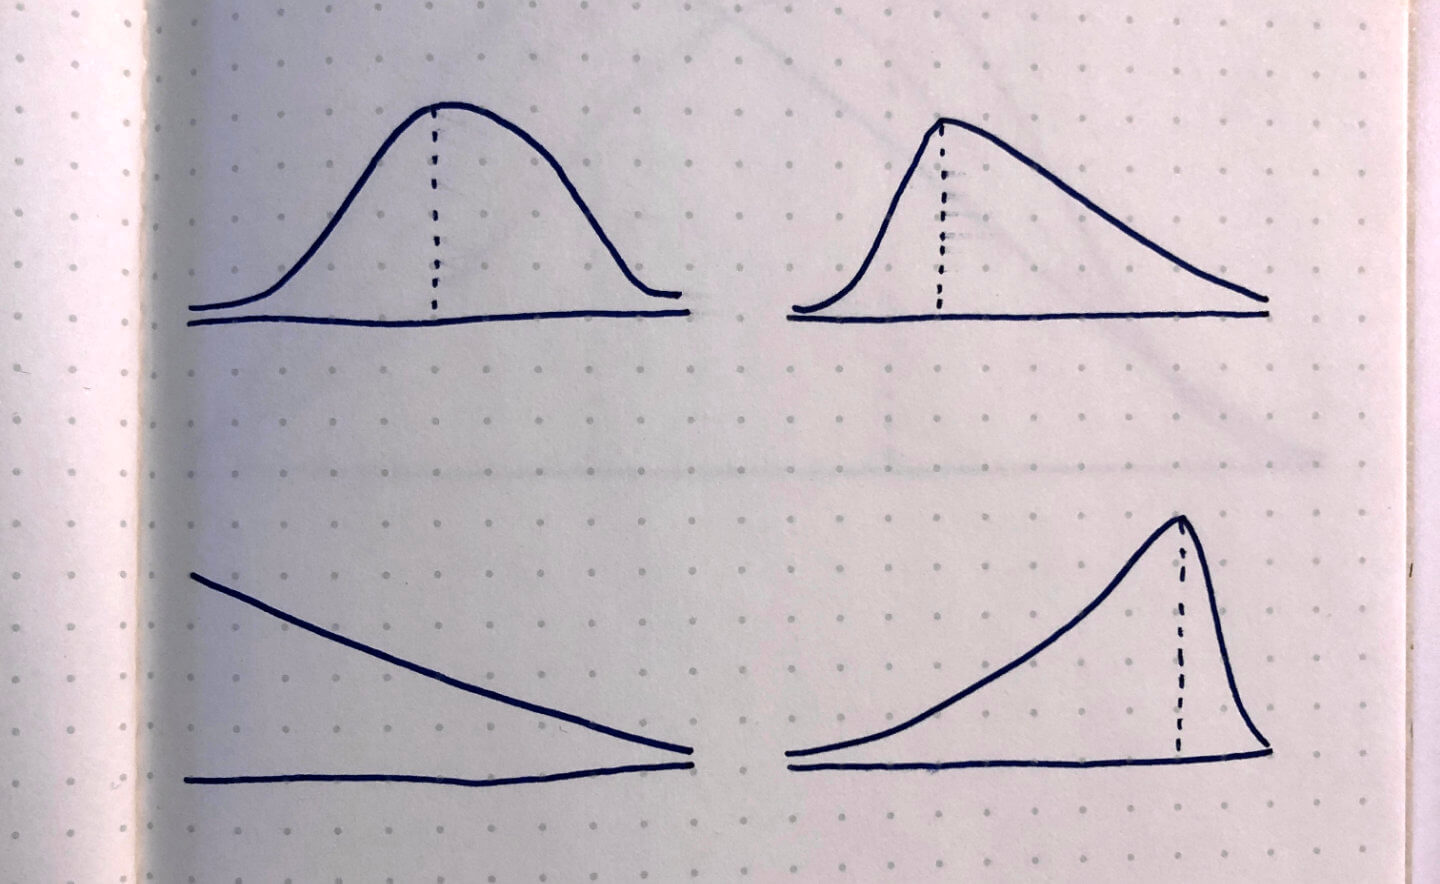 Sketches of Hill Charts with variable slopes